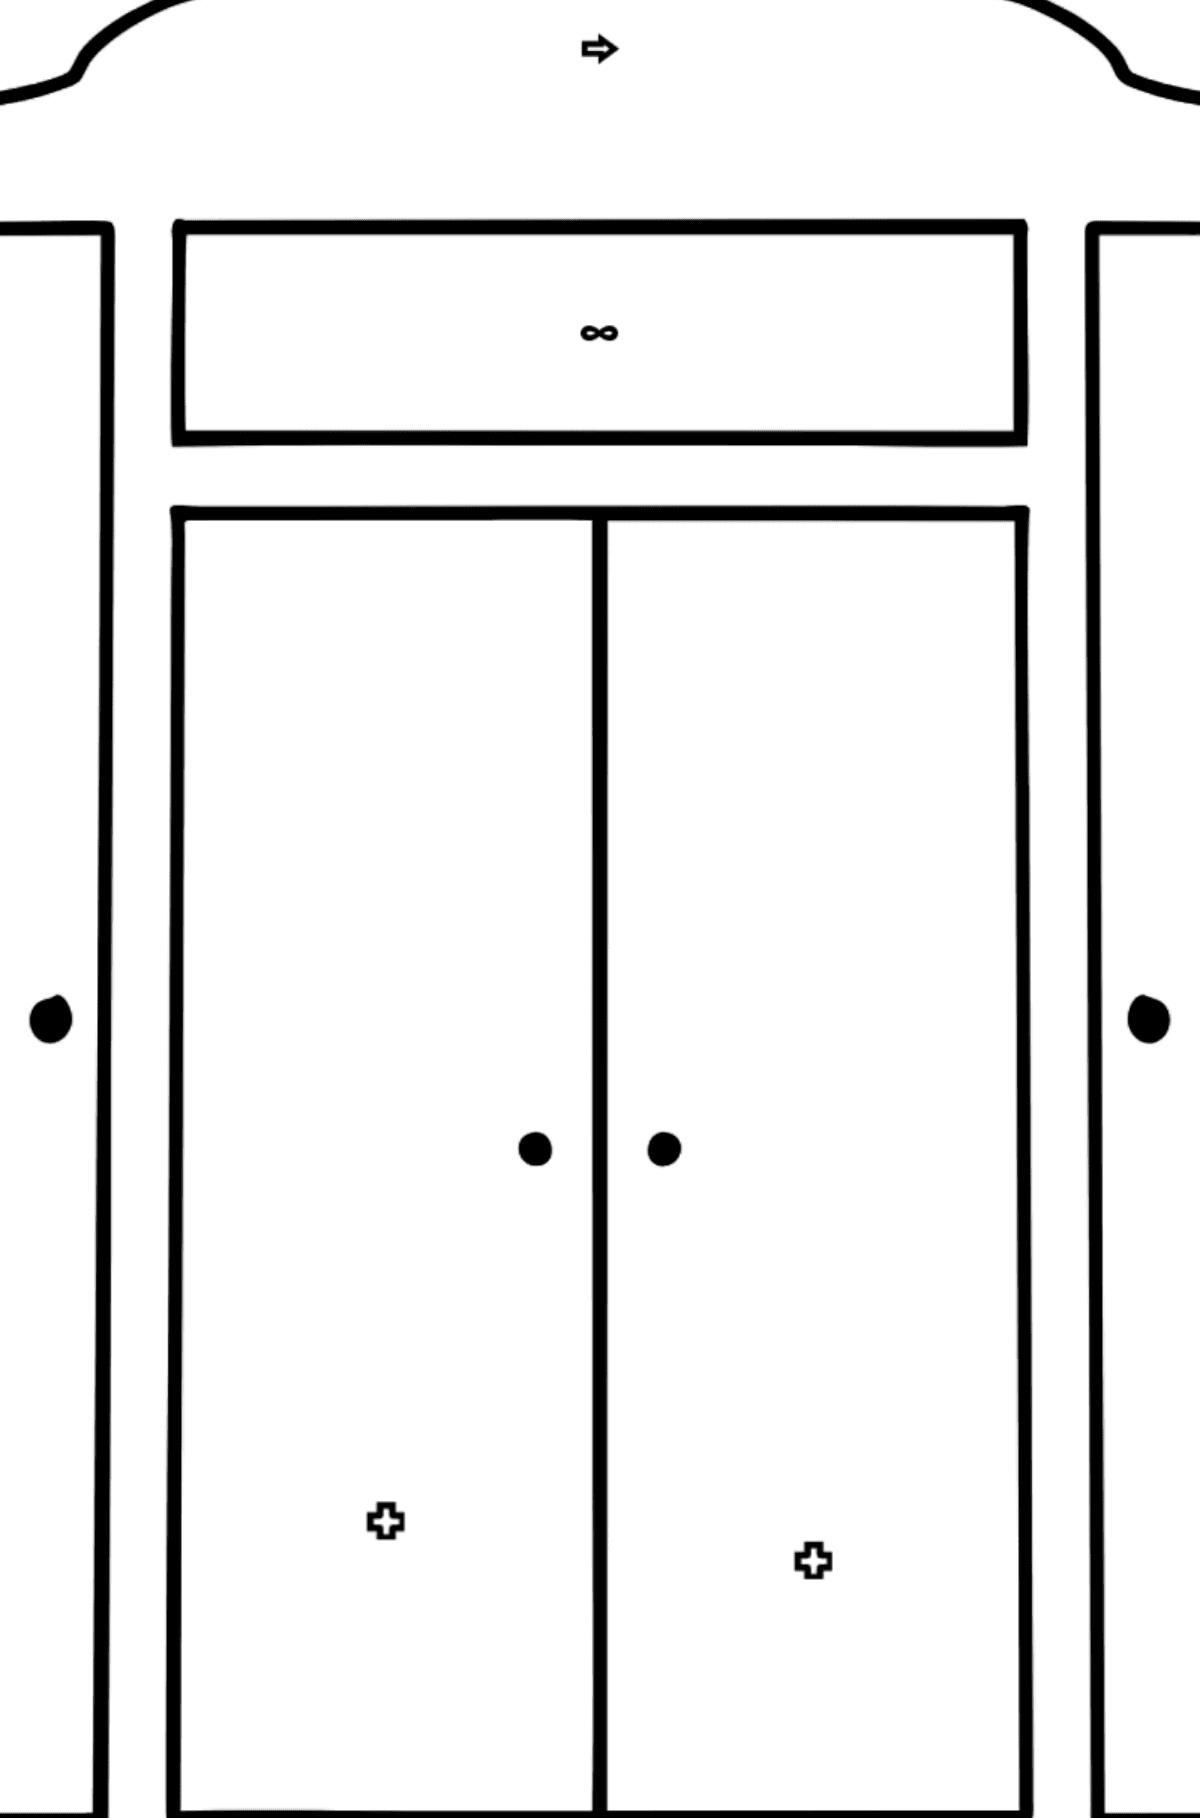 Wardrobe coloring page - Coloring by Symbols and Geometric Shapes for Kids